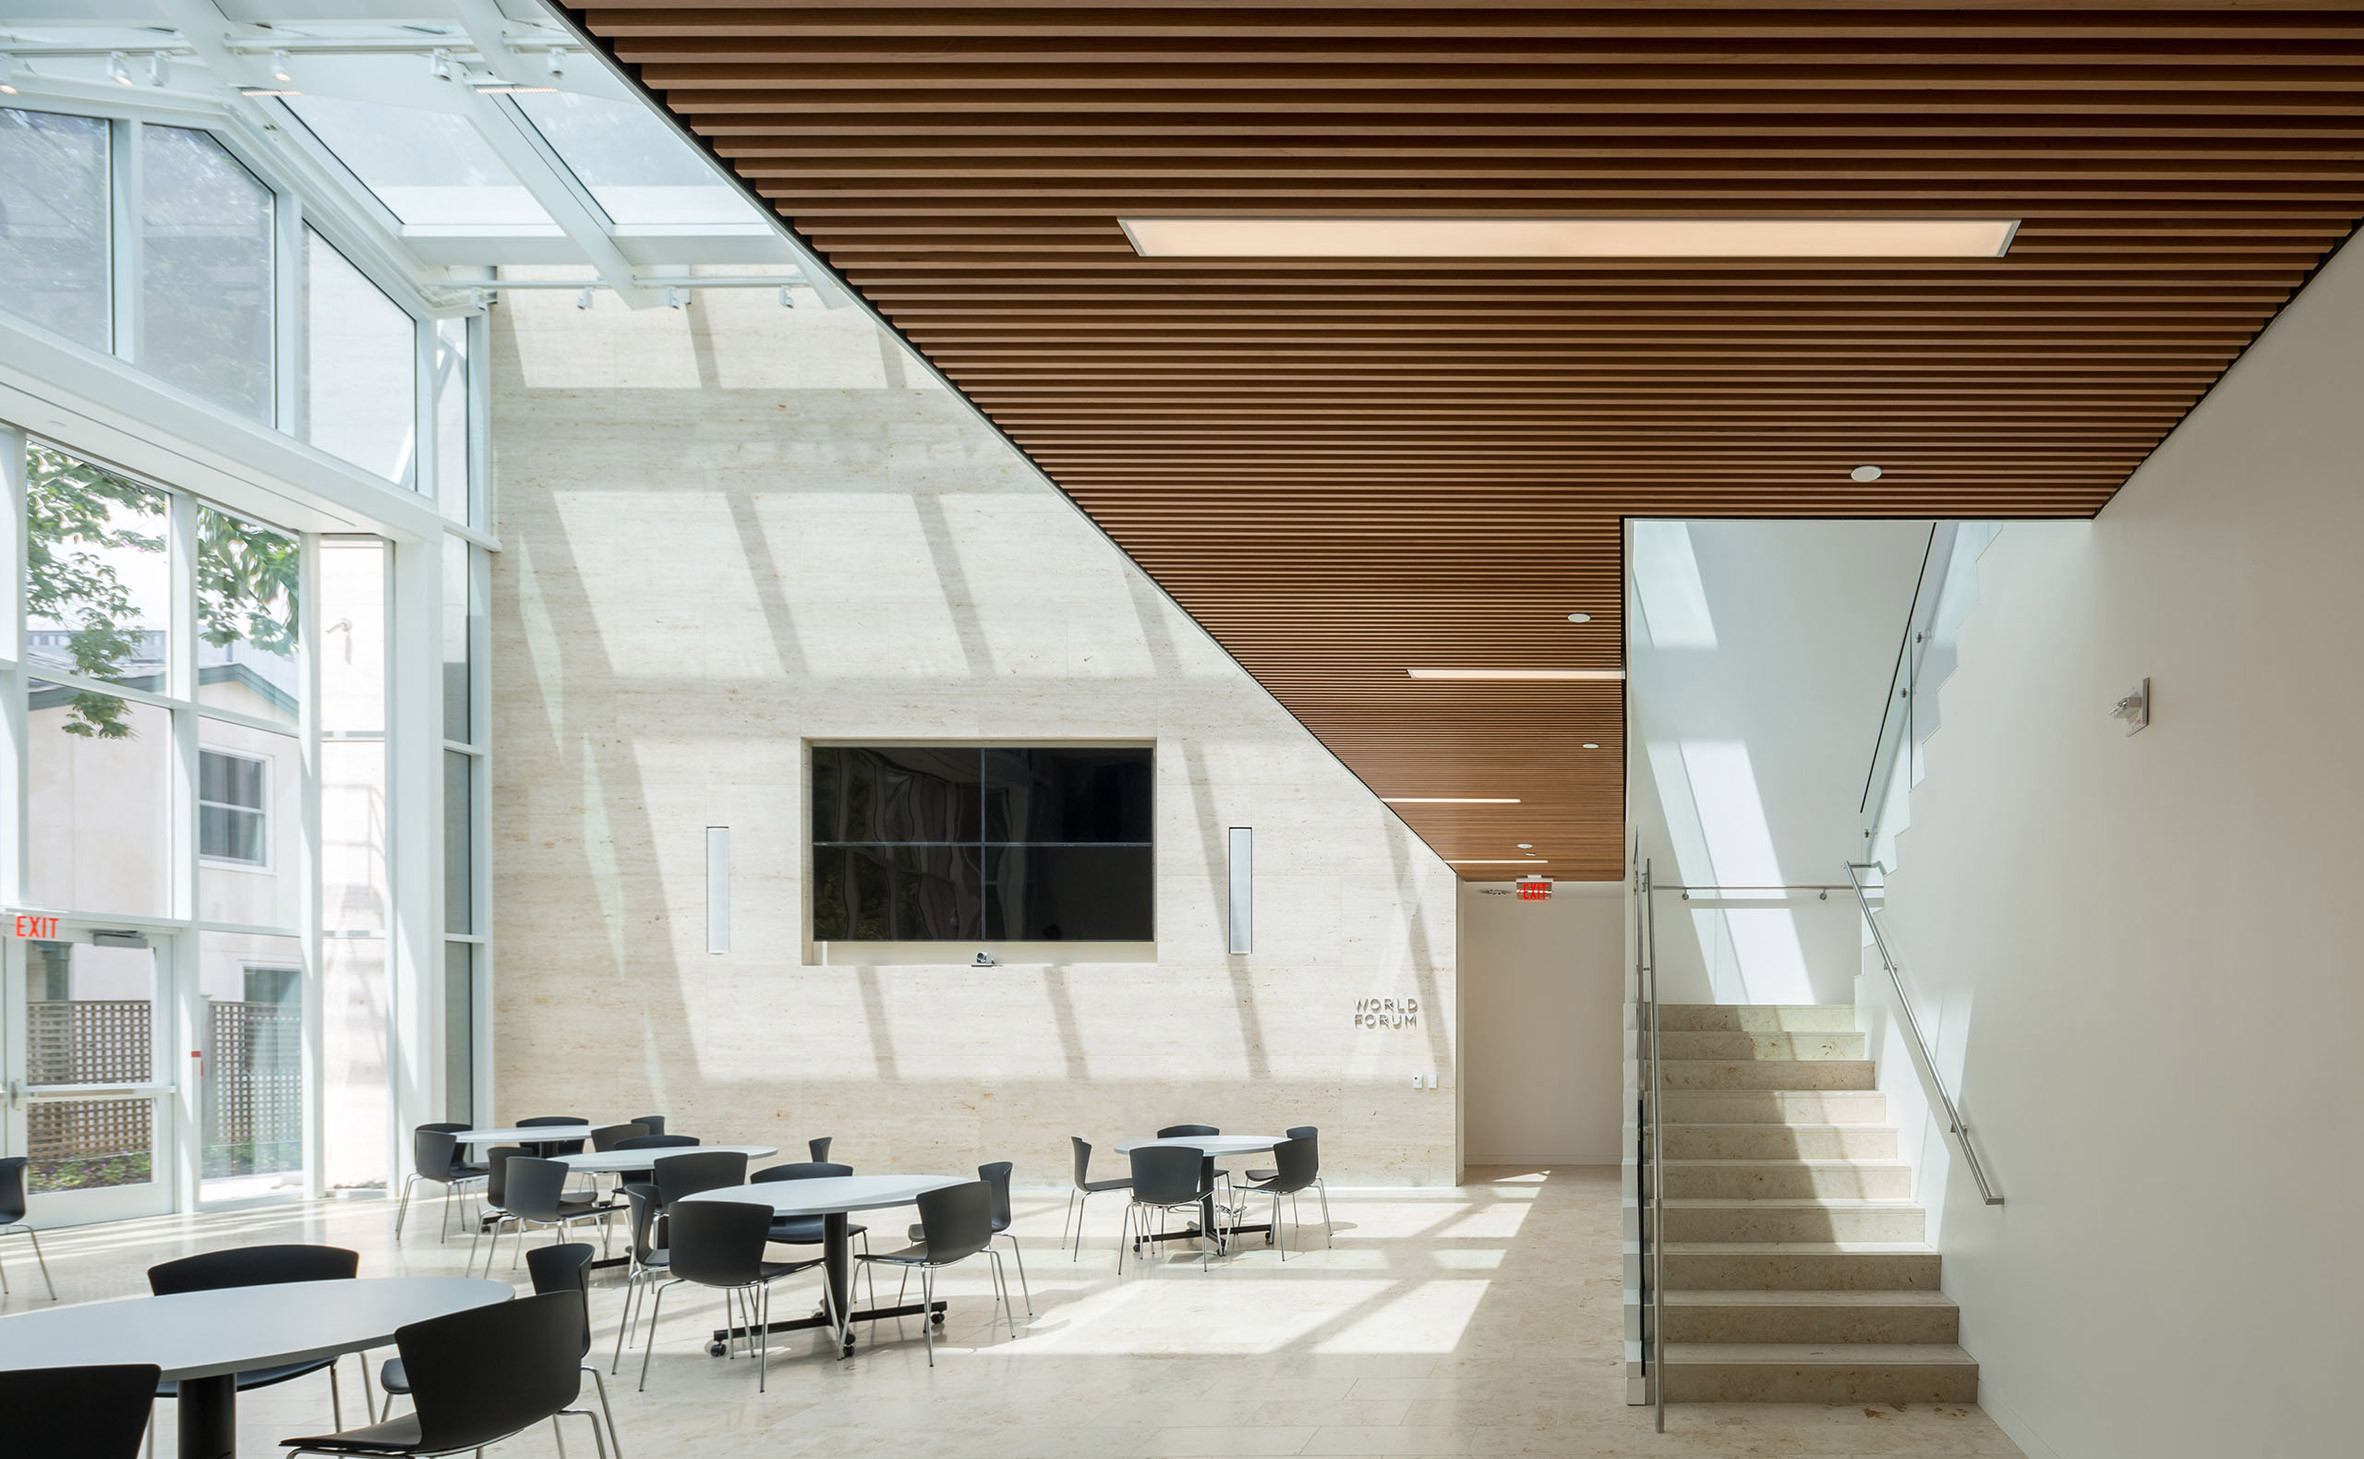 perry-world-house-1100-architects-education-philadelphia-university-pennsylvania-usa_dezeen_2364_col_6